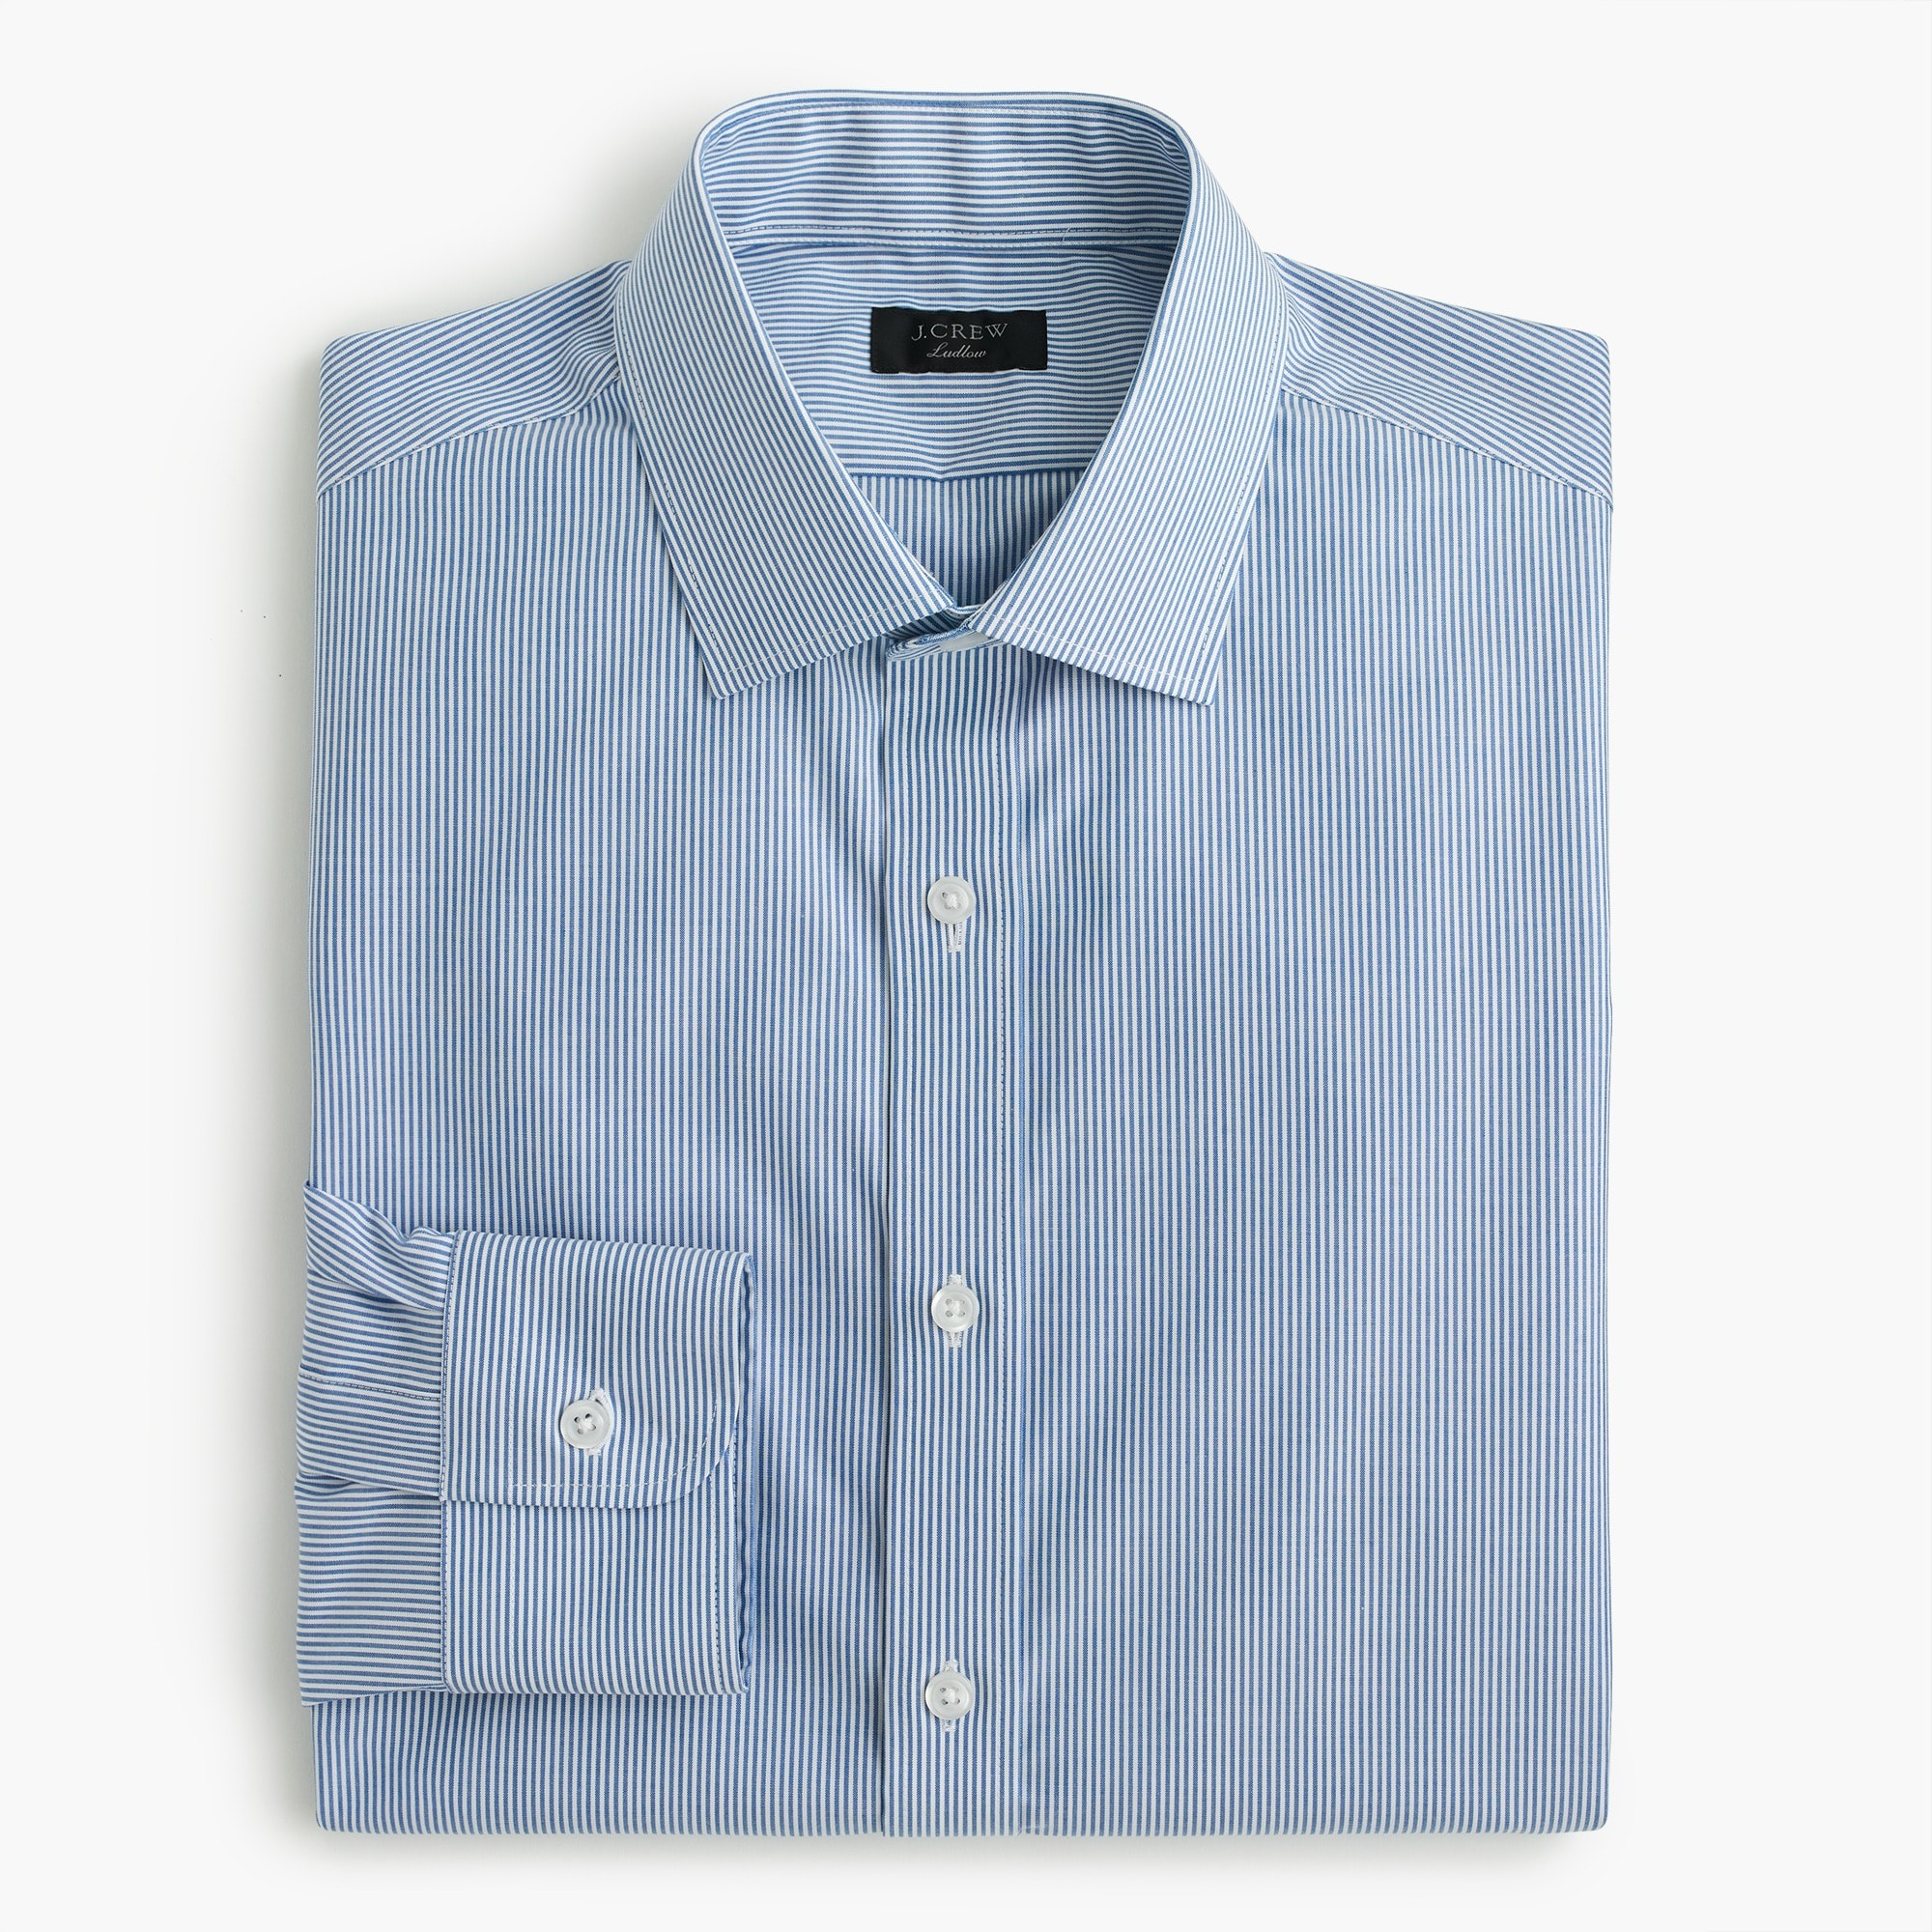 Classic Ludlow stretch two-ply easy-care cotton dress shirt in blue microstripe